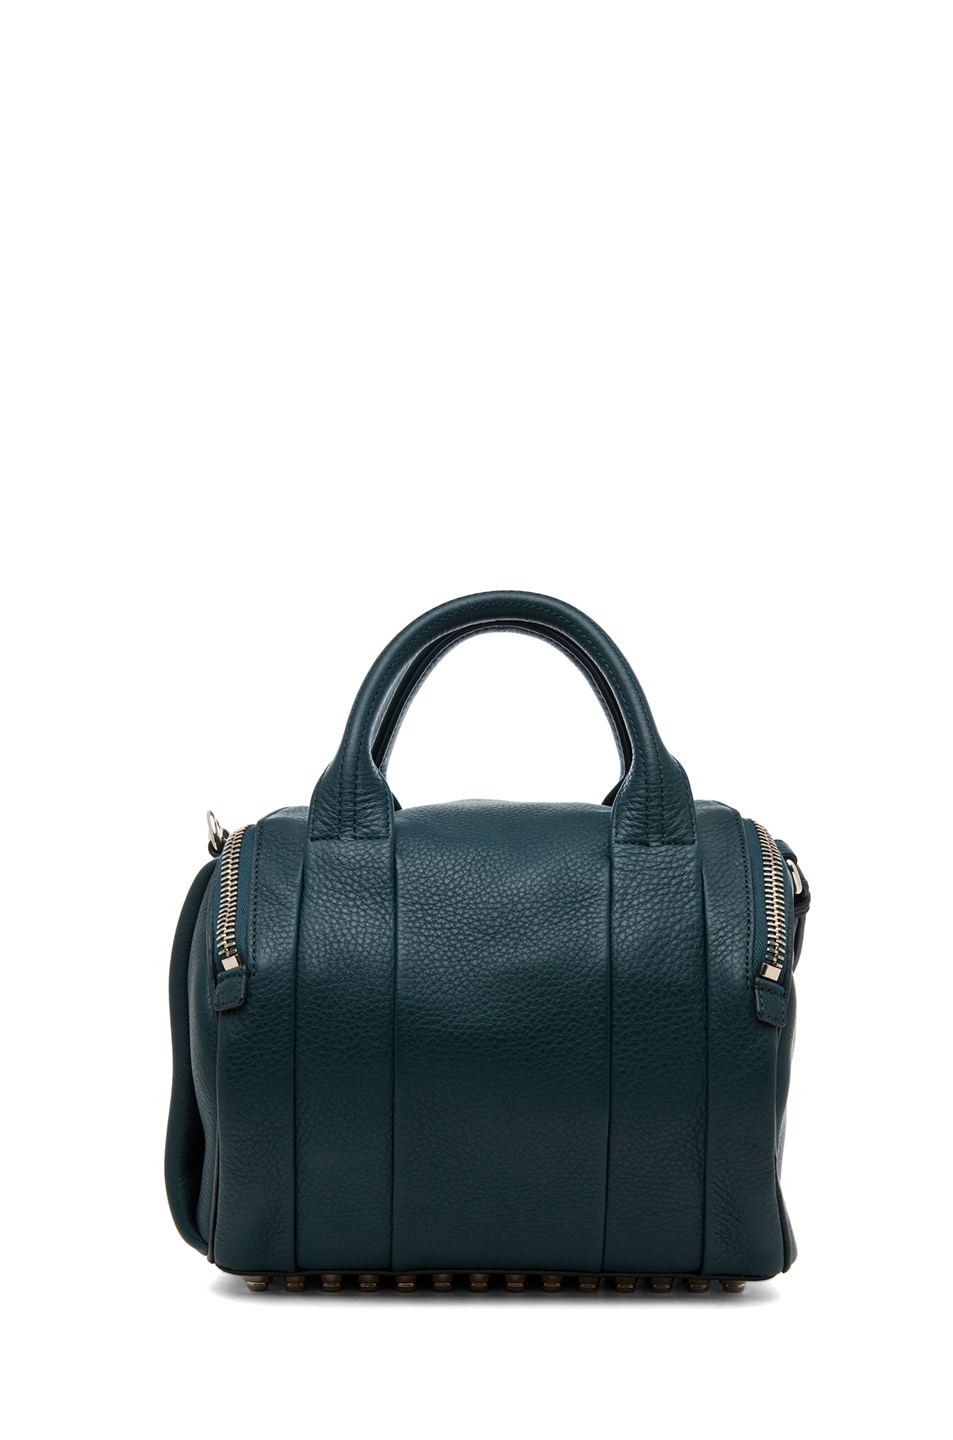 Image 2 of Alexander Wang Rockie Satchel in Dark Argon